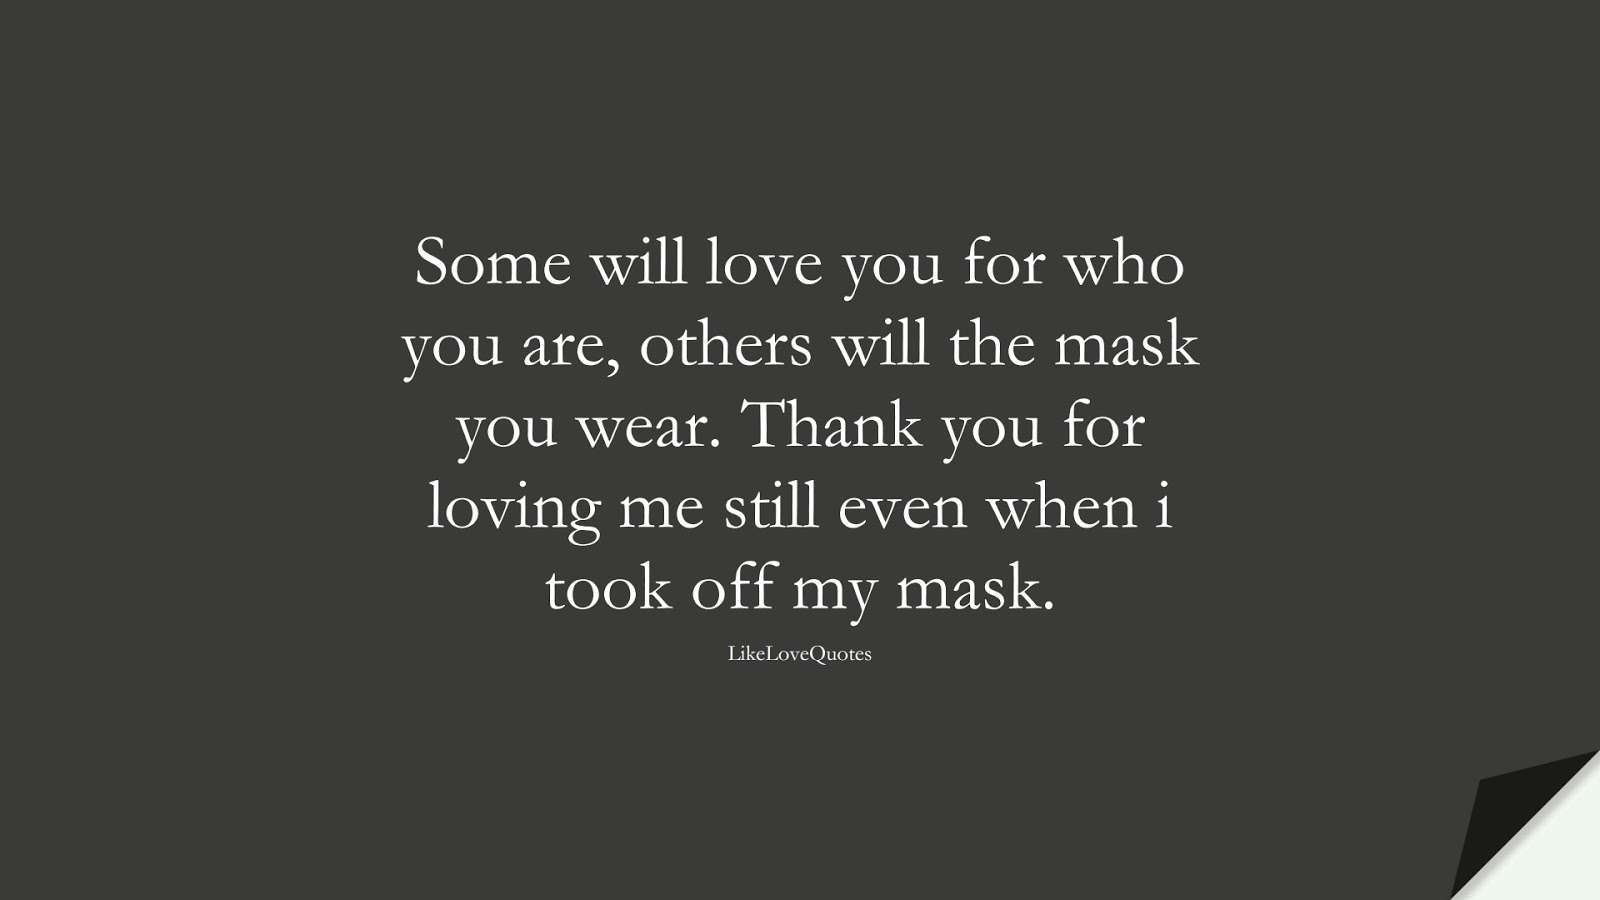 Some will love you for who you are, others will the mask you wear. Thank you for loving me still even when i took off my mask. (LikeLoveQuotes);  #LoveQuotes